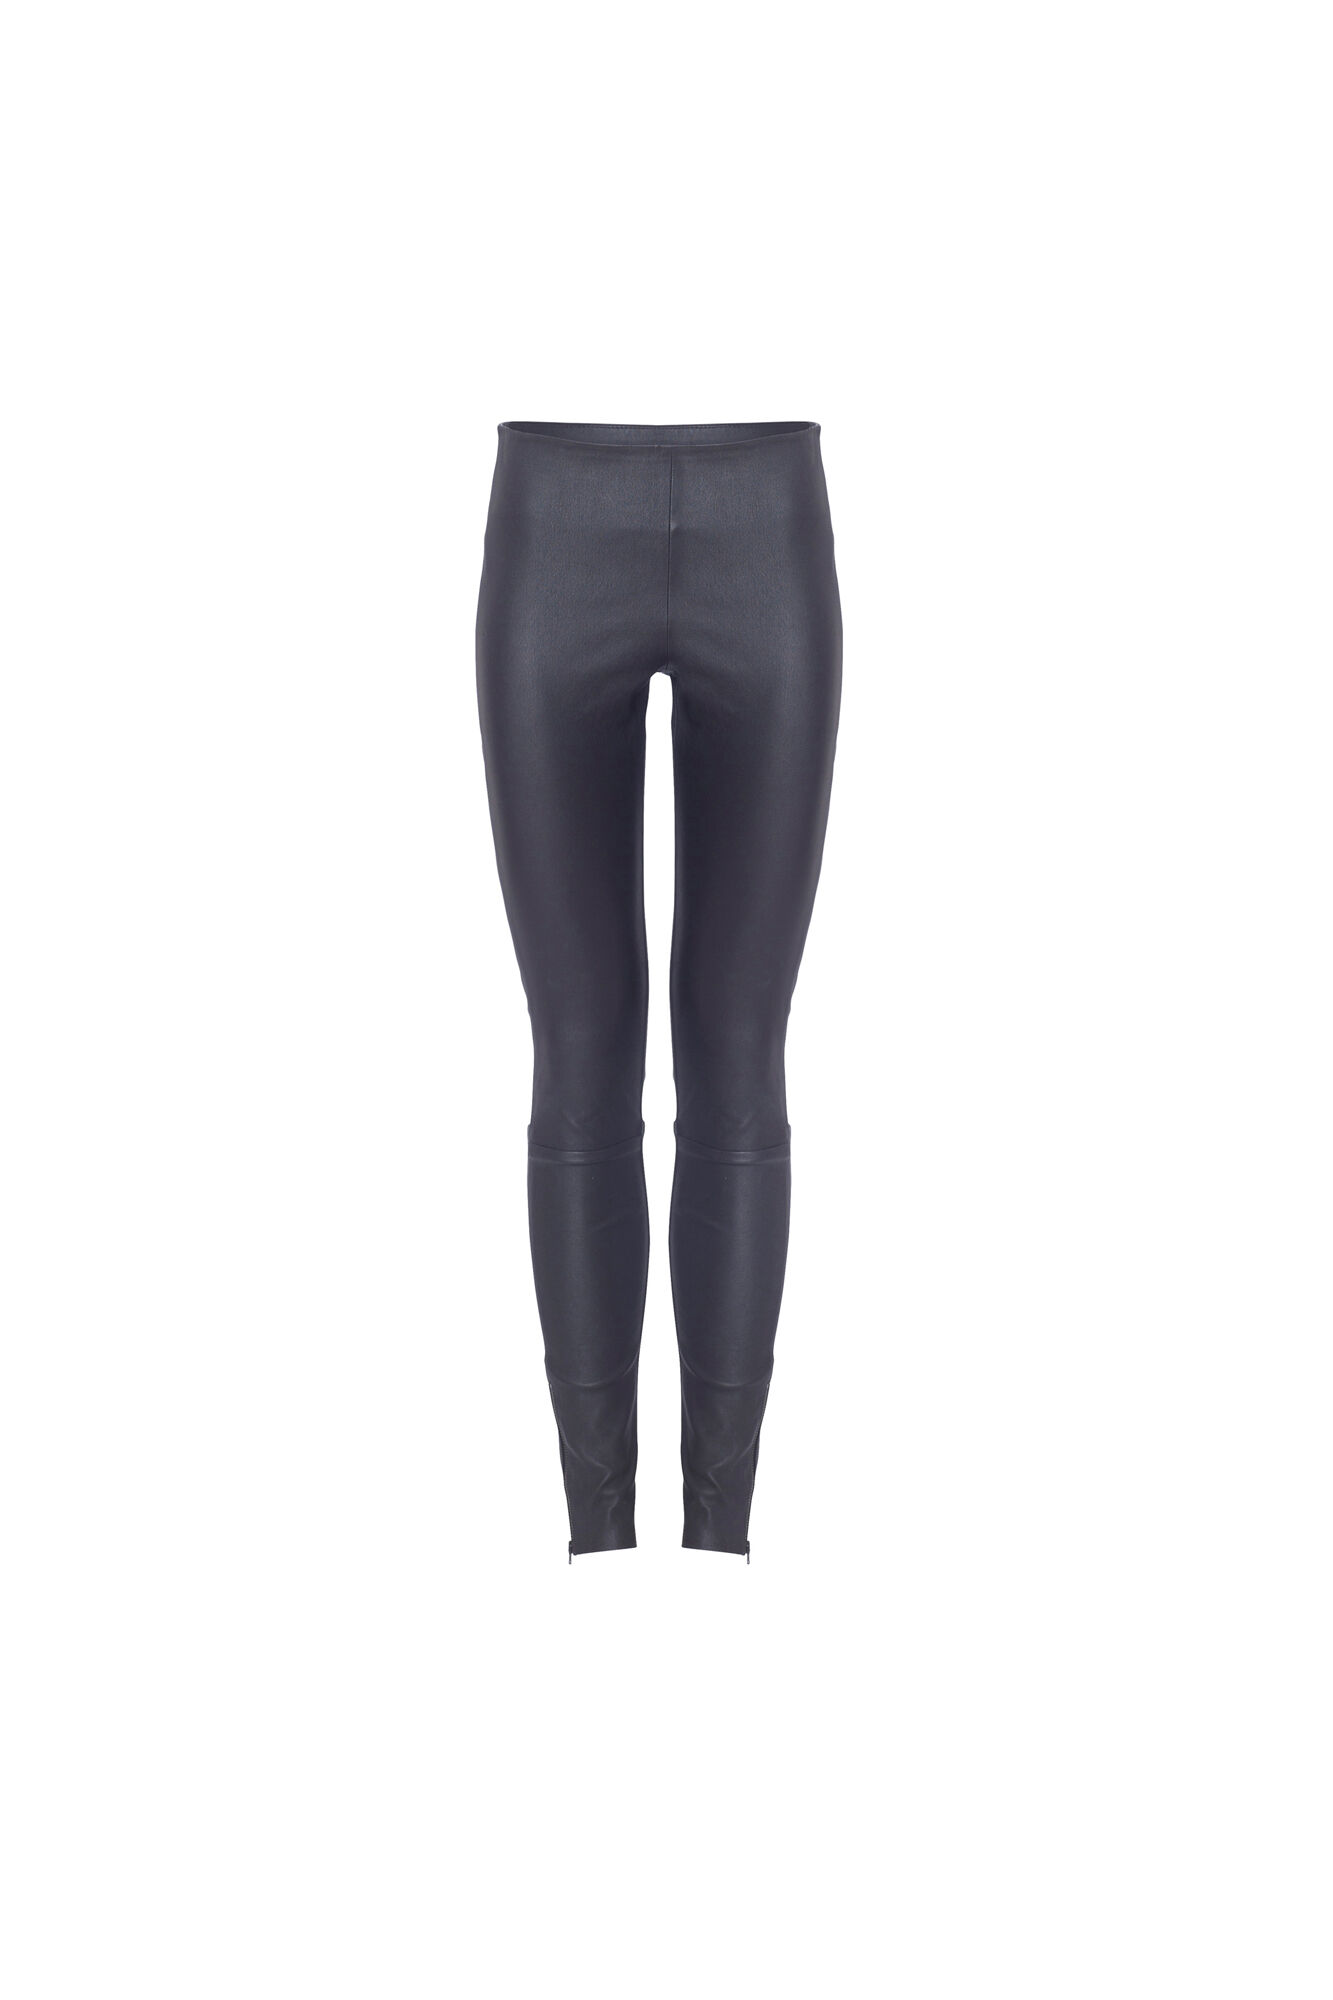 ENLEON LEGGINGS 6401